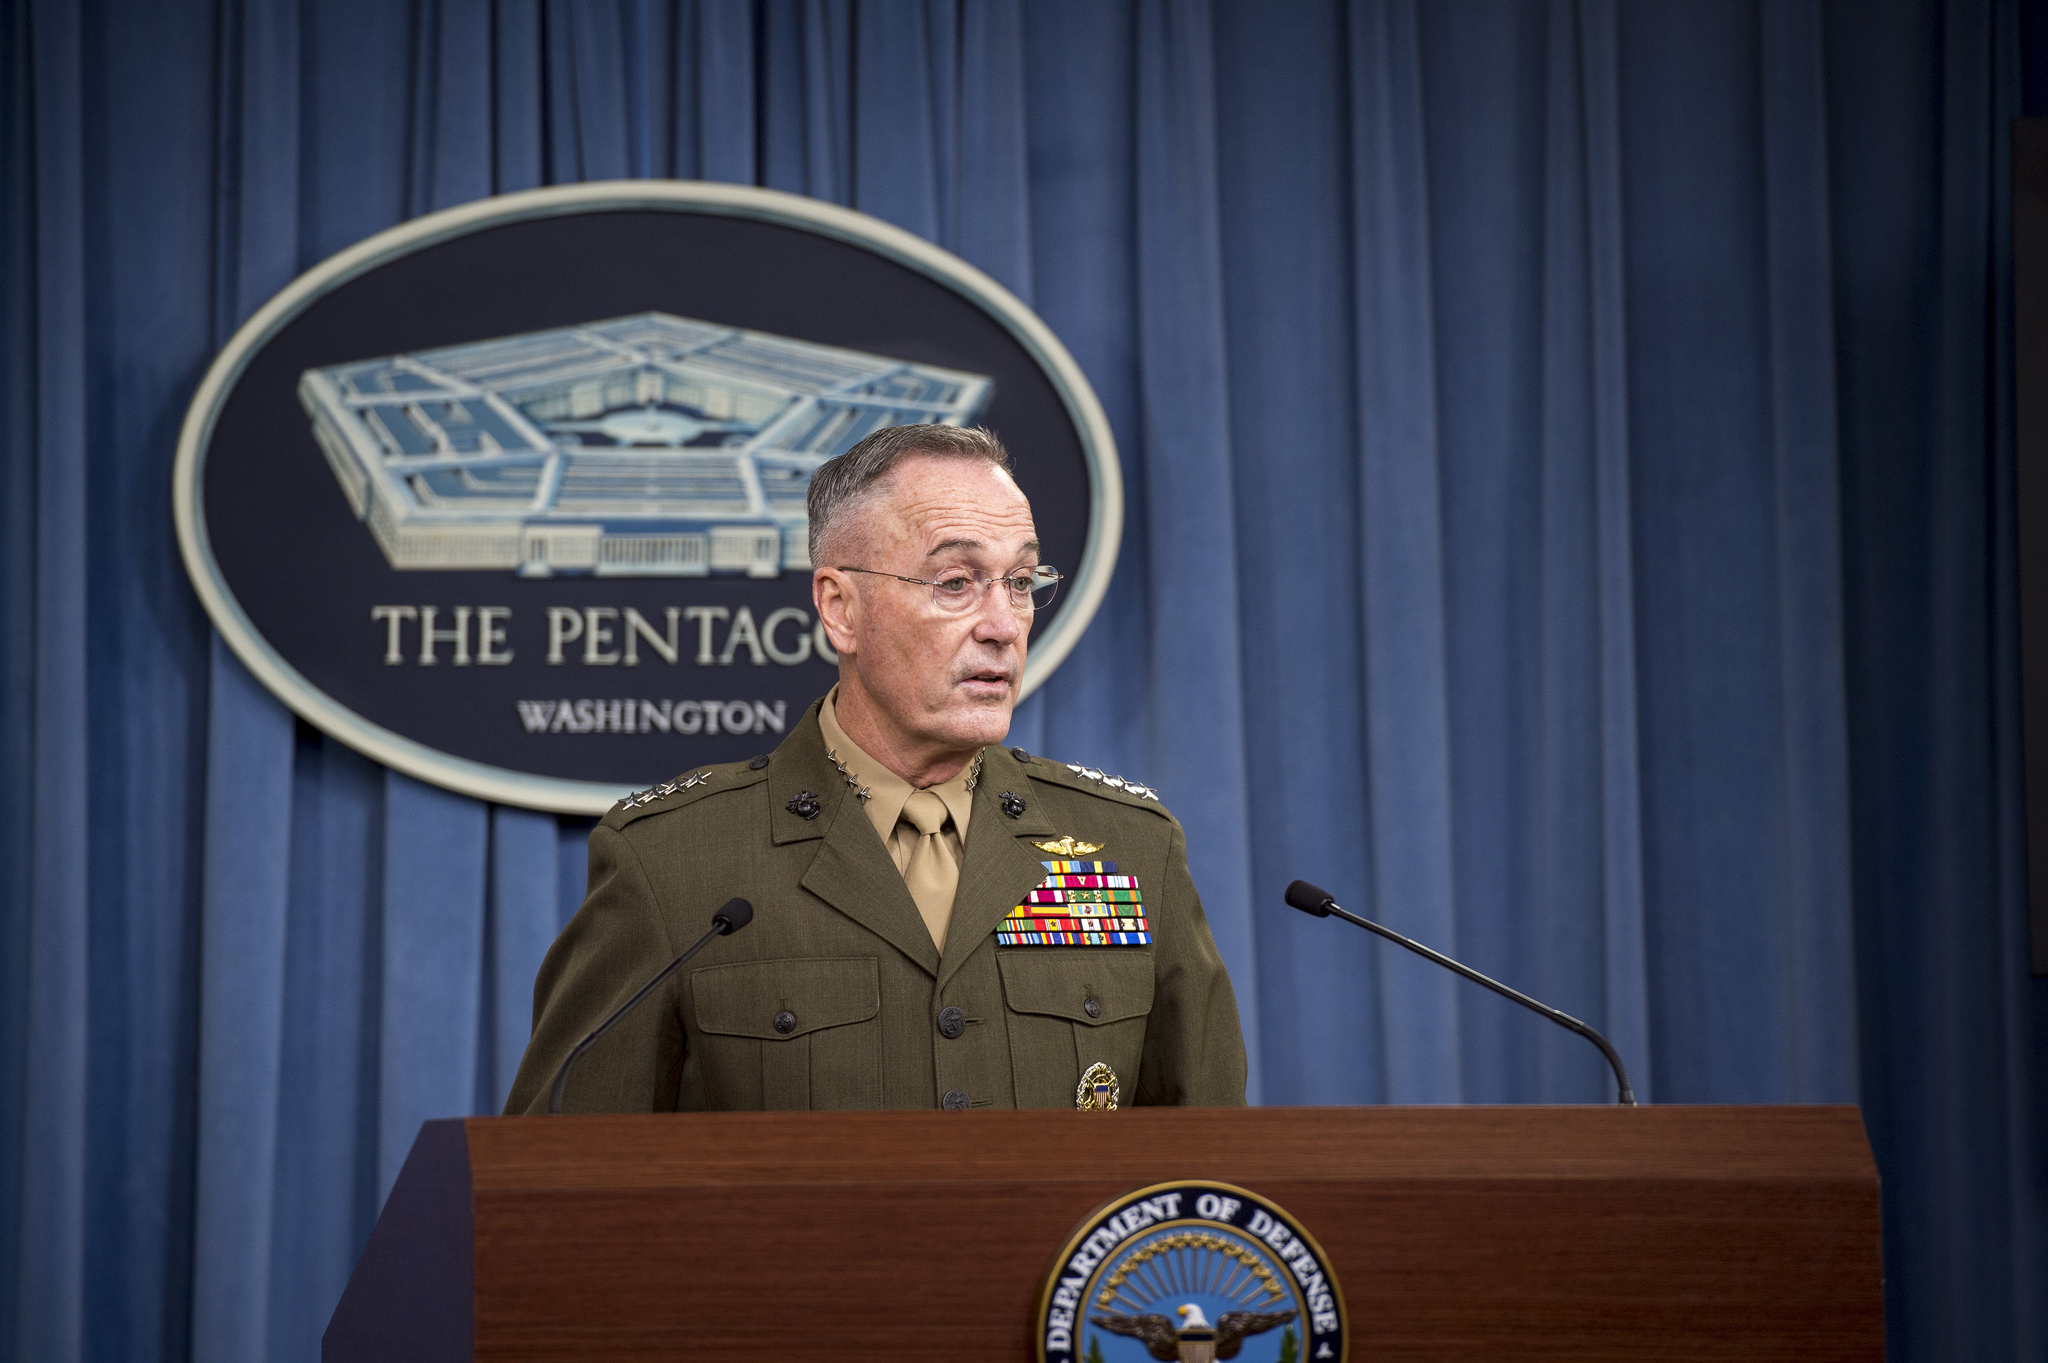 U.S. Marine Corps Gen. Joe Dunford, chairman of the Joint Chiefs of Staff, speaks with media during a briefing Oct. 23, 2017, at the Pentagon. (Air Force Tech. Sgt. Brigitte N. Brantley/DoD)